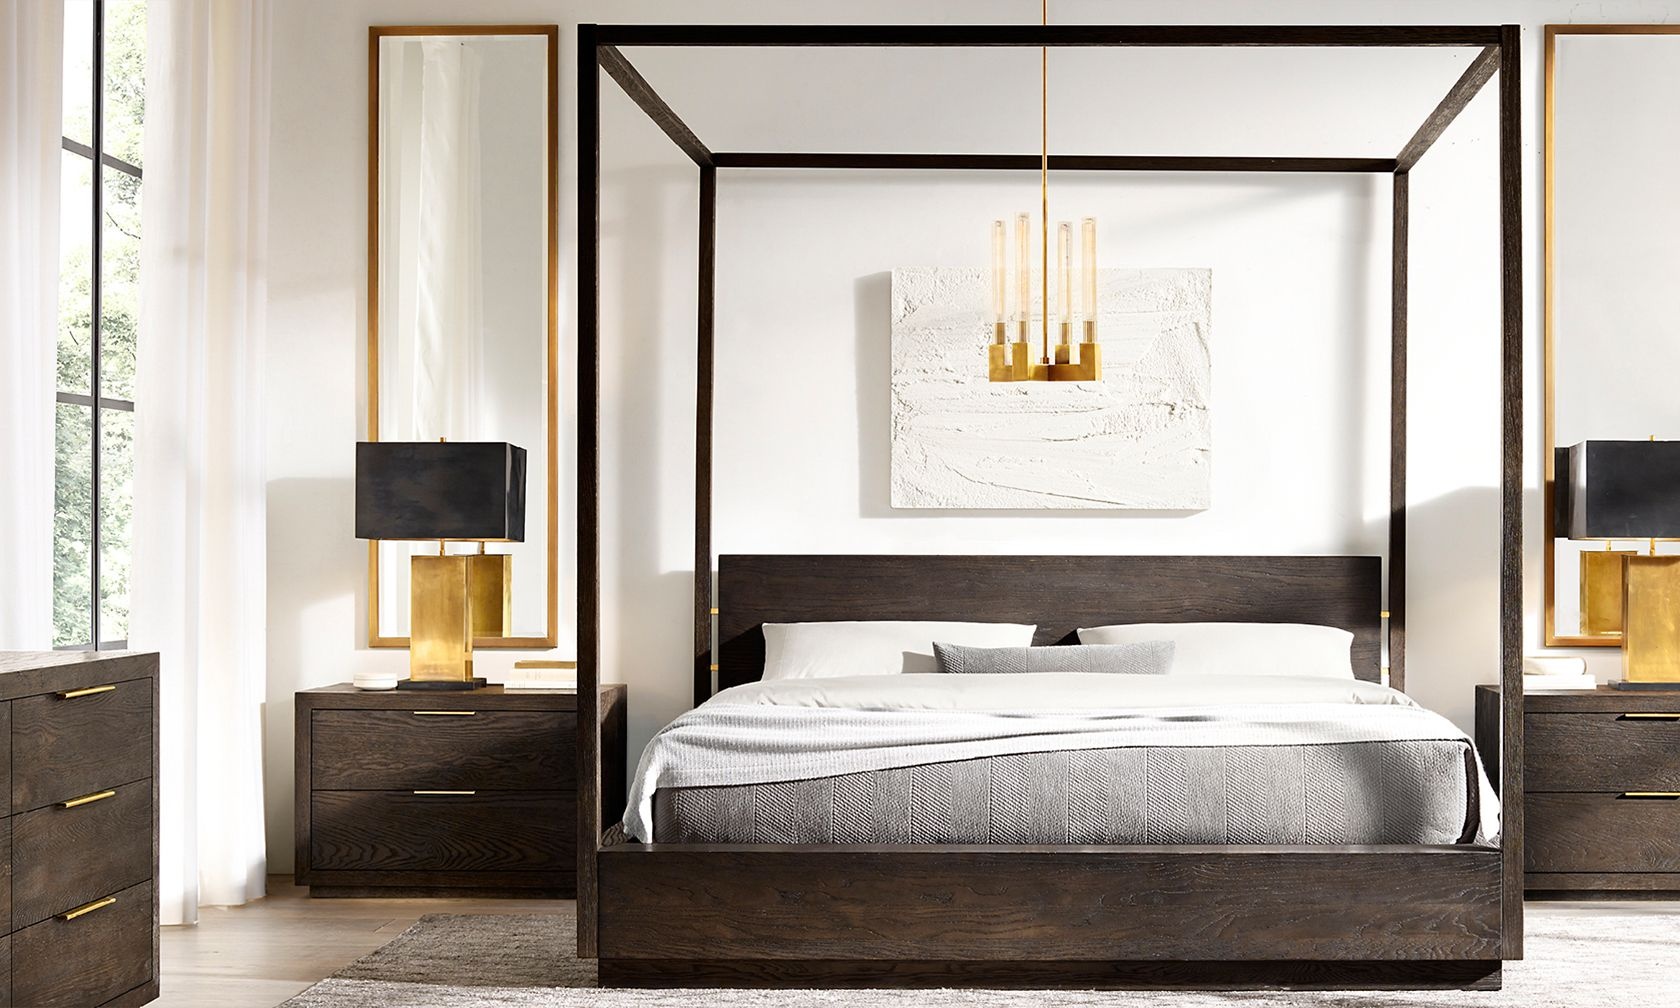 Emejing Restoration Hardware Bedroom Gallery